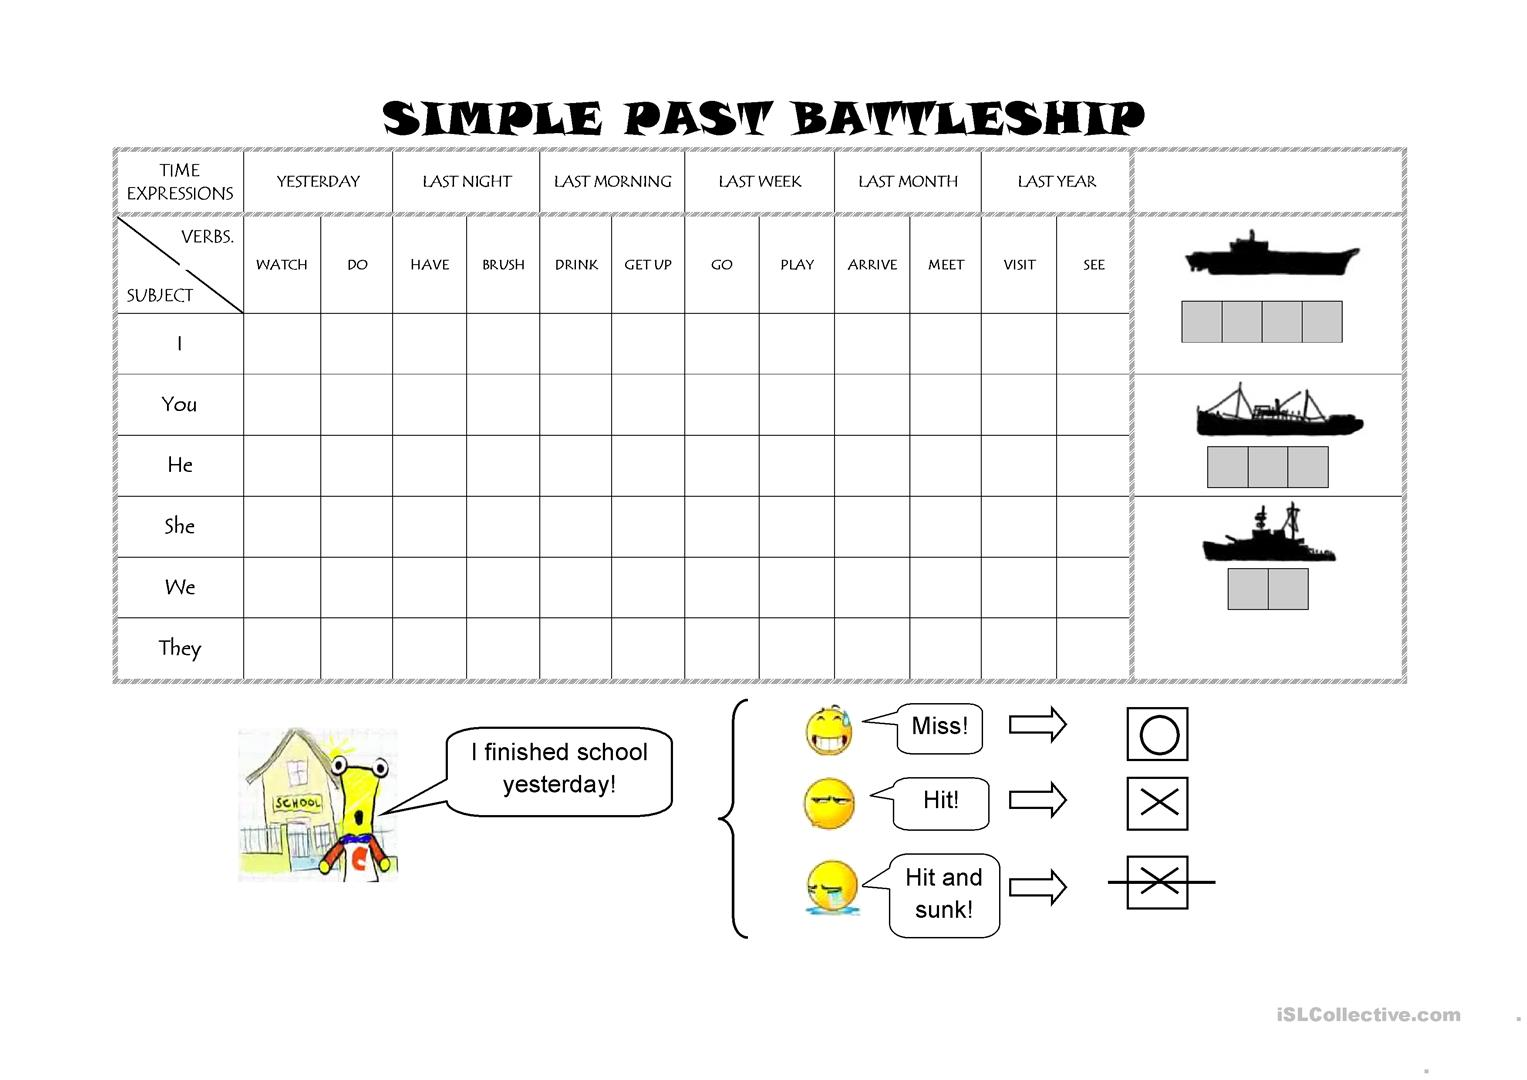 Simple Past Battleship Worksheet